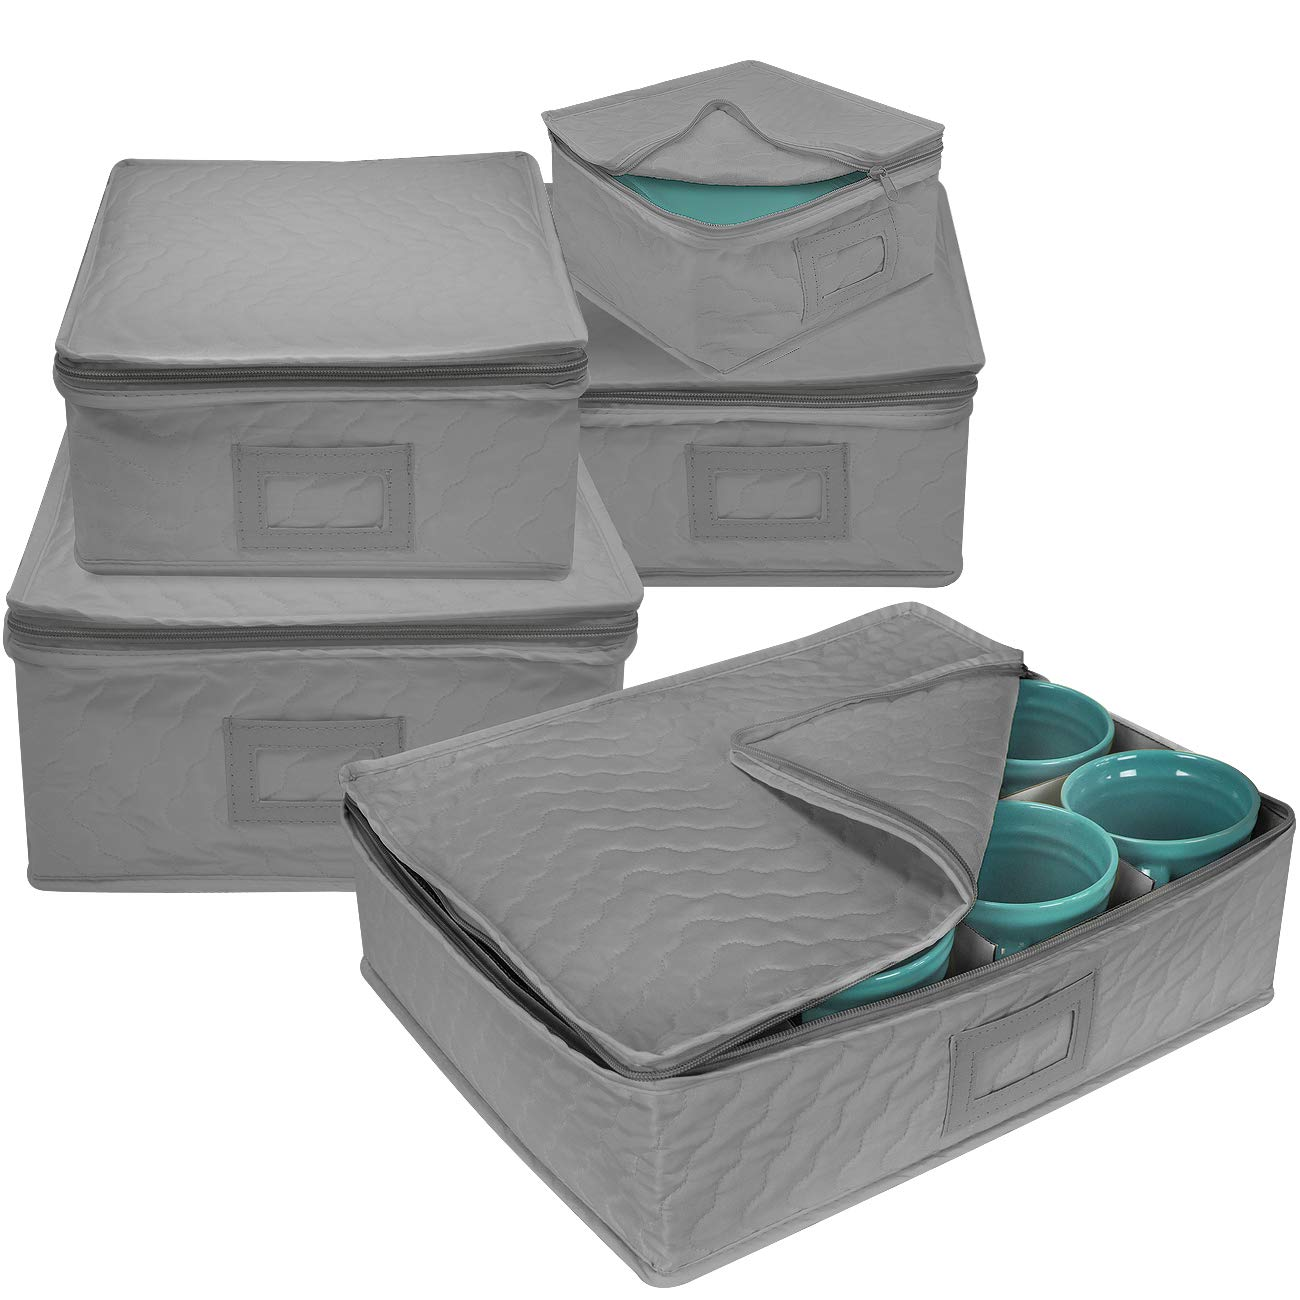 Sorbus 5-Piece Dinnerware Storage Square Set, Service for 12, Quilted Protection, Includes Felt Protectors and Cardboard Dividers for Plates, Cups, Fine China (Square Storage - Gray)